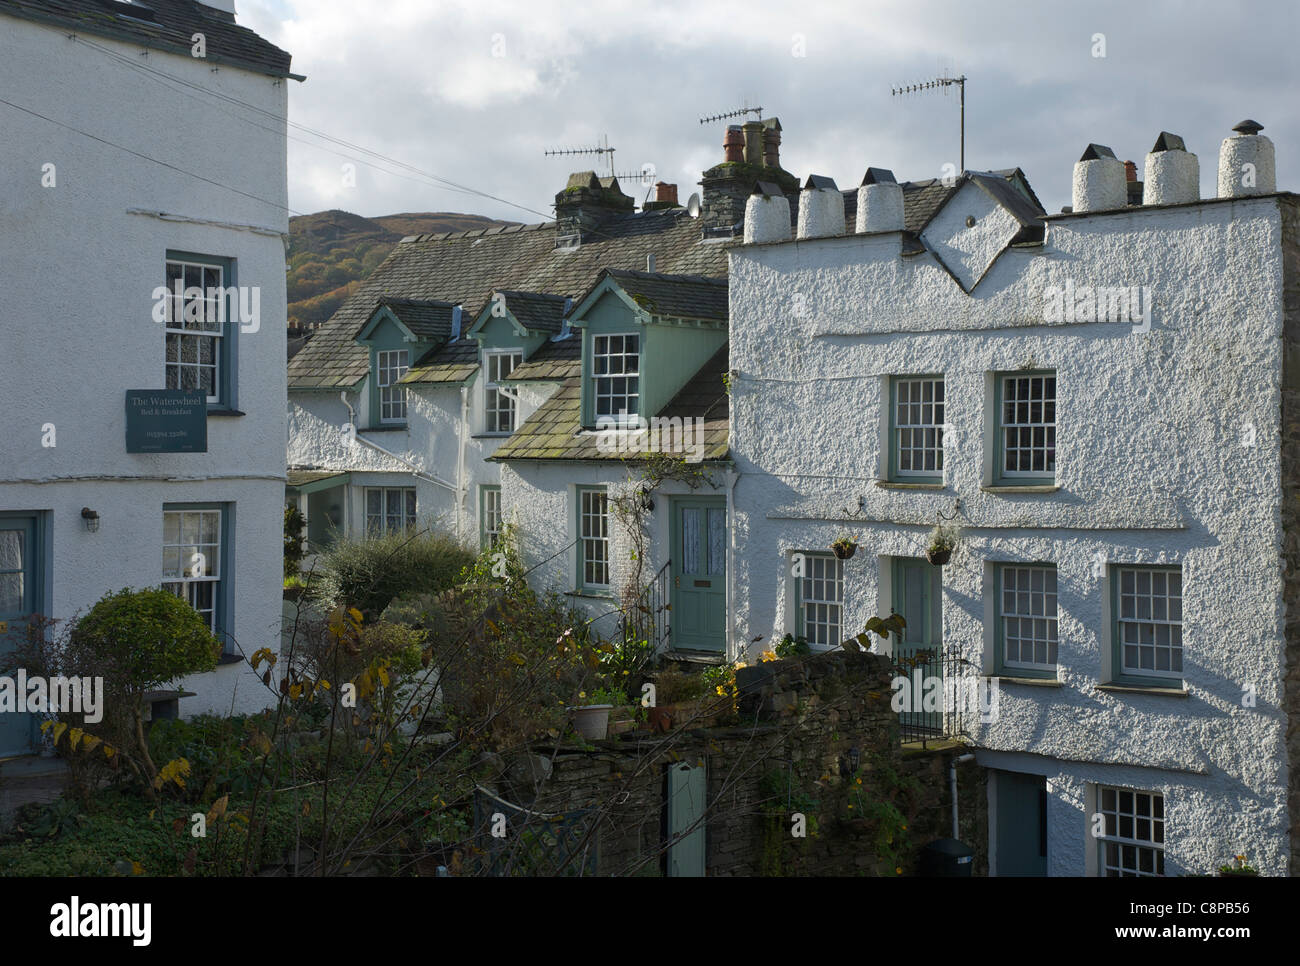 Houses in Ambleside, Lake District National Park, Cumbria, England UK - Stock Image